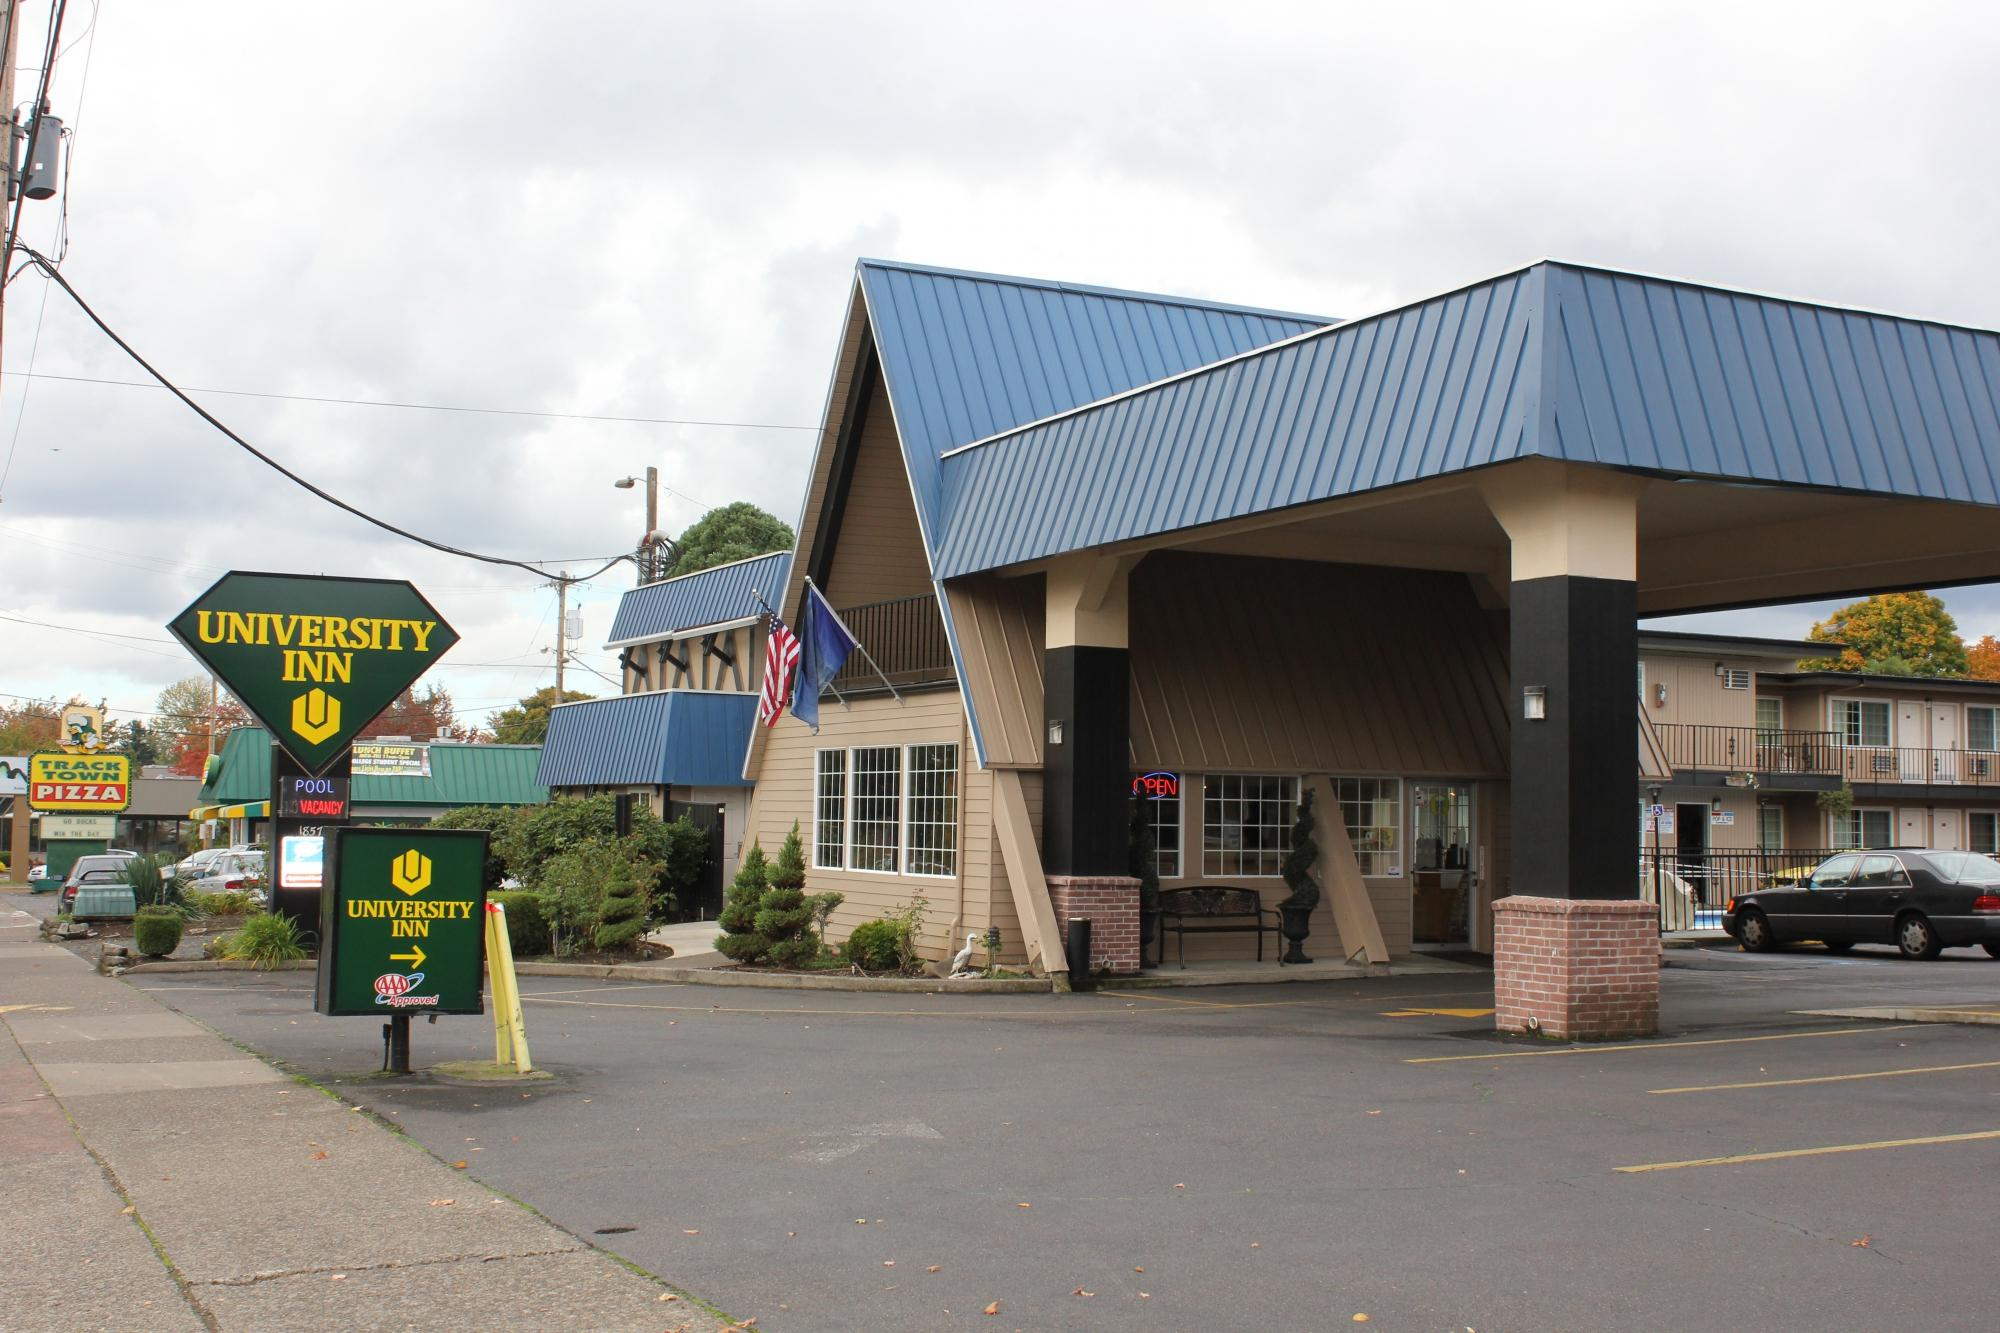 Eugene University Inn & Suites